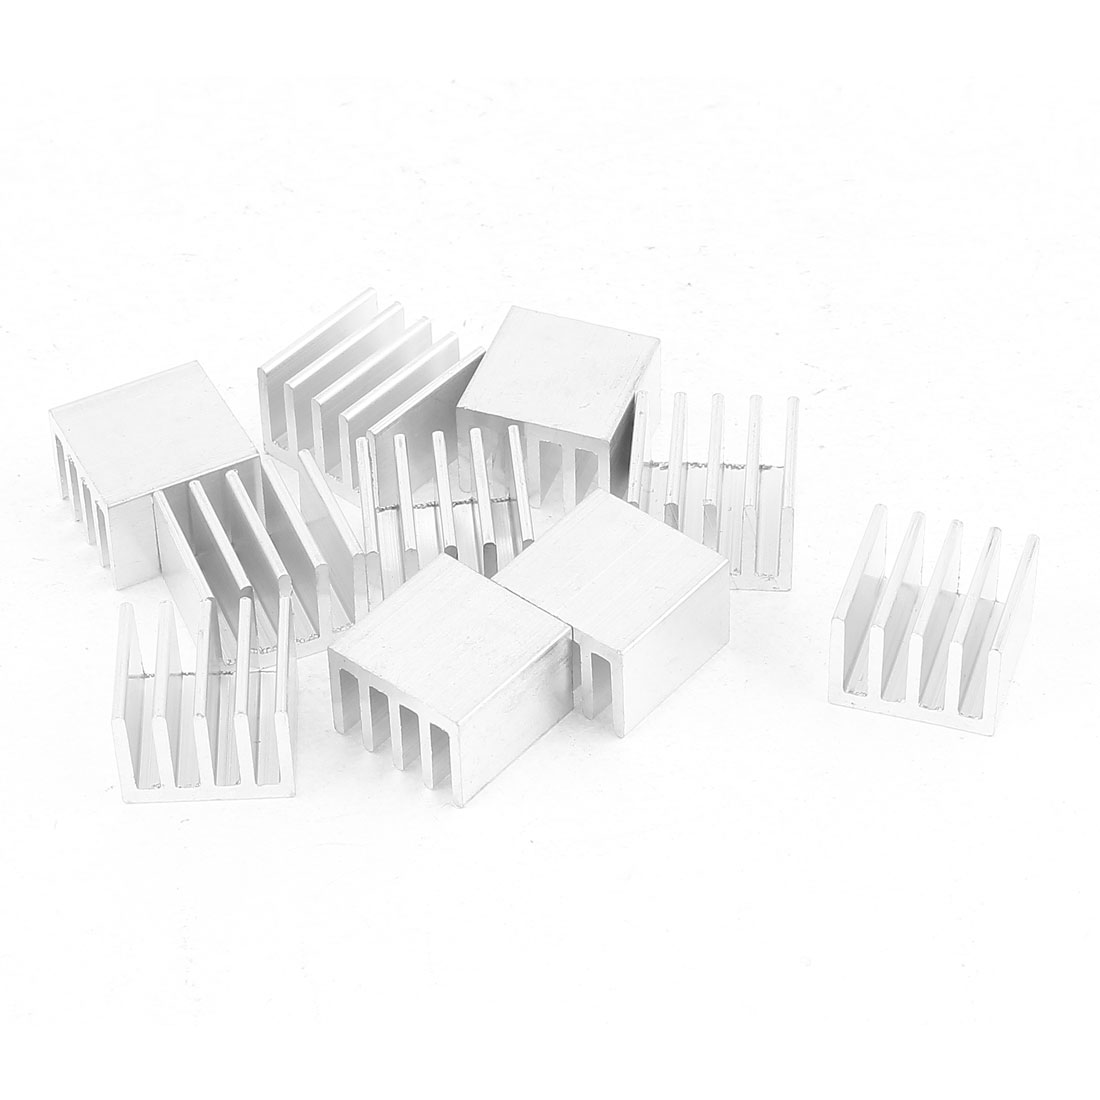 10 Pcs Silver Tone Aluminum Radiator Heat Sink Heatsink 14mm x 14mm x 10mm